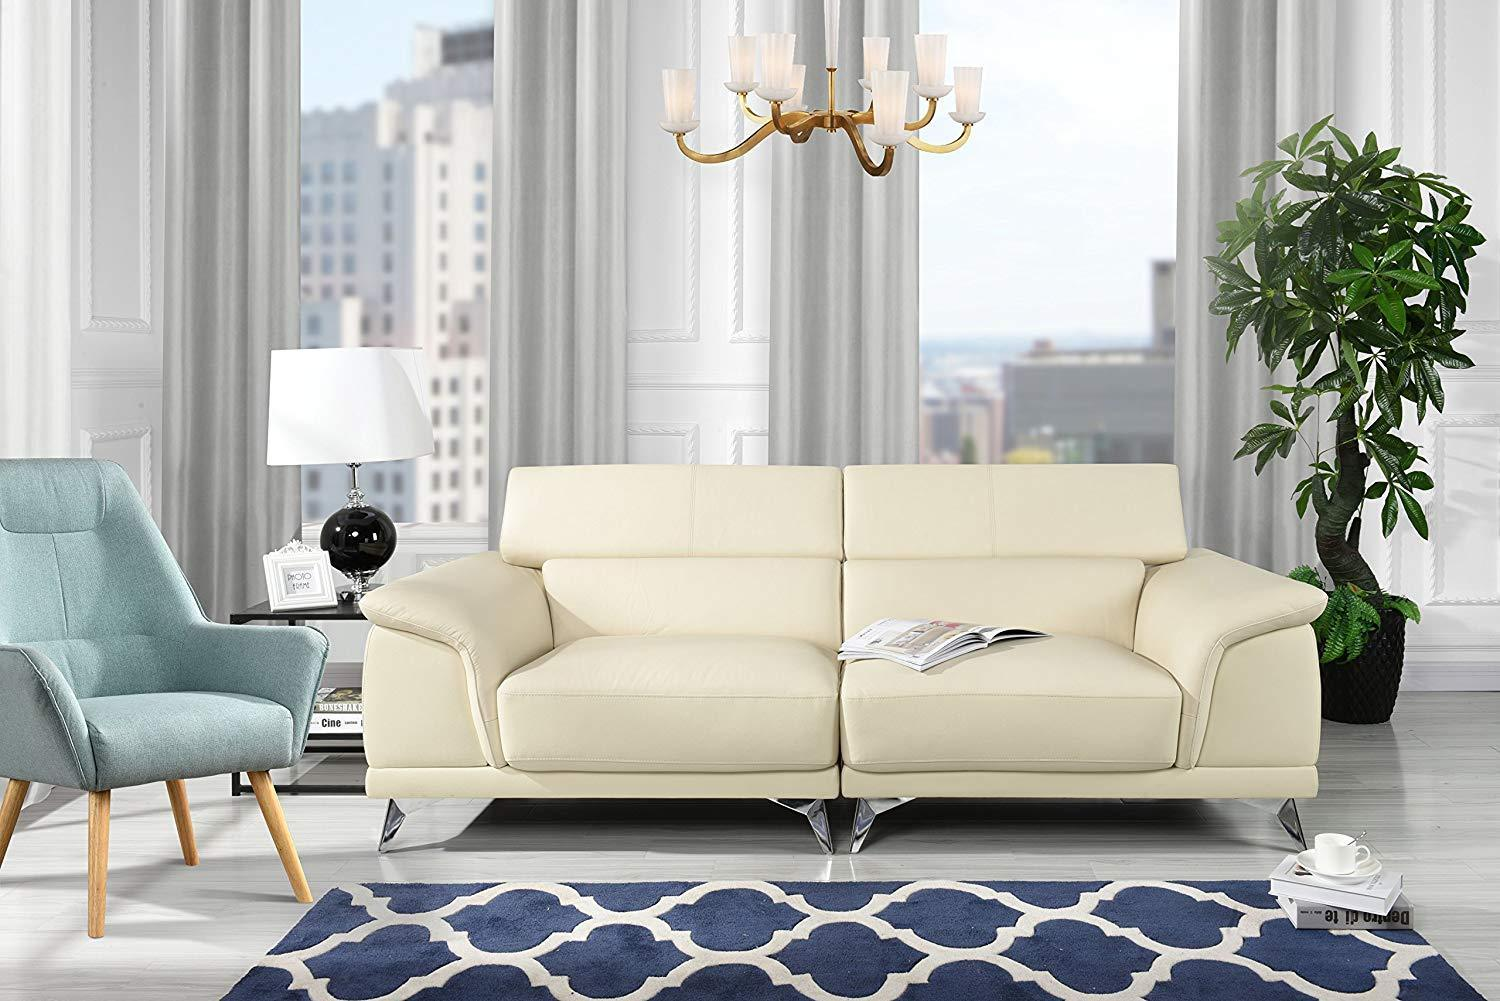 New Century® Beige Modern Living Room Sofa With Adjustable Headrest